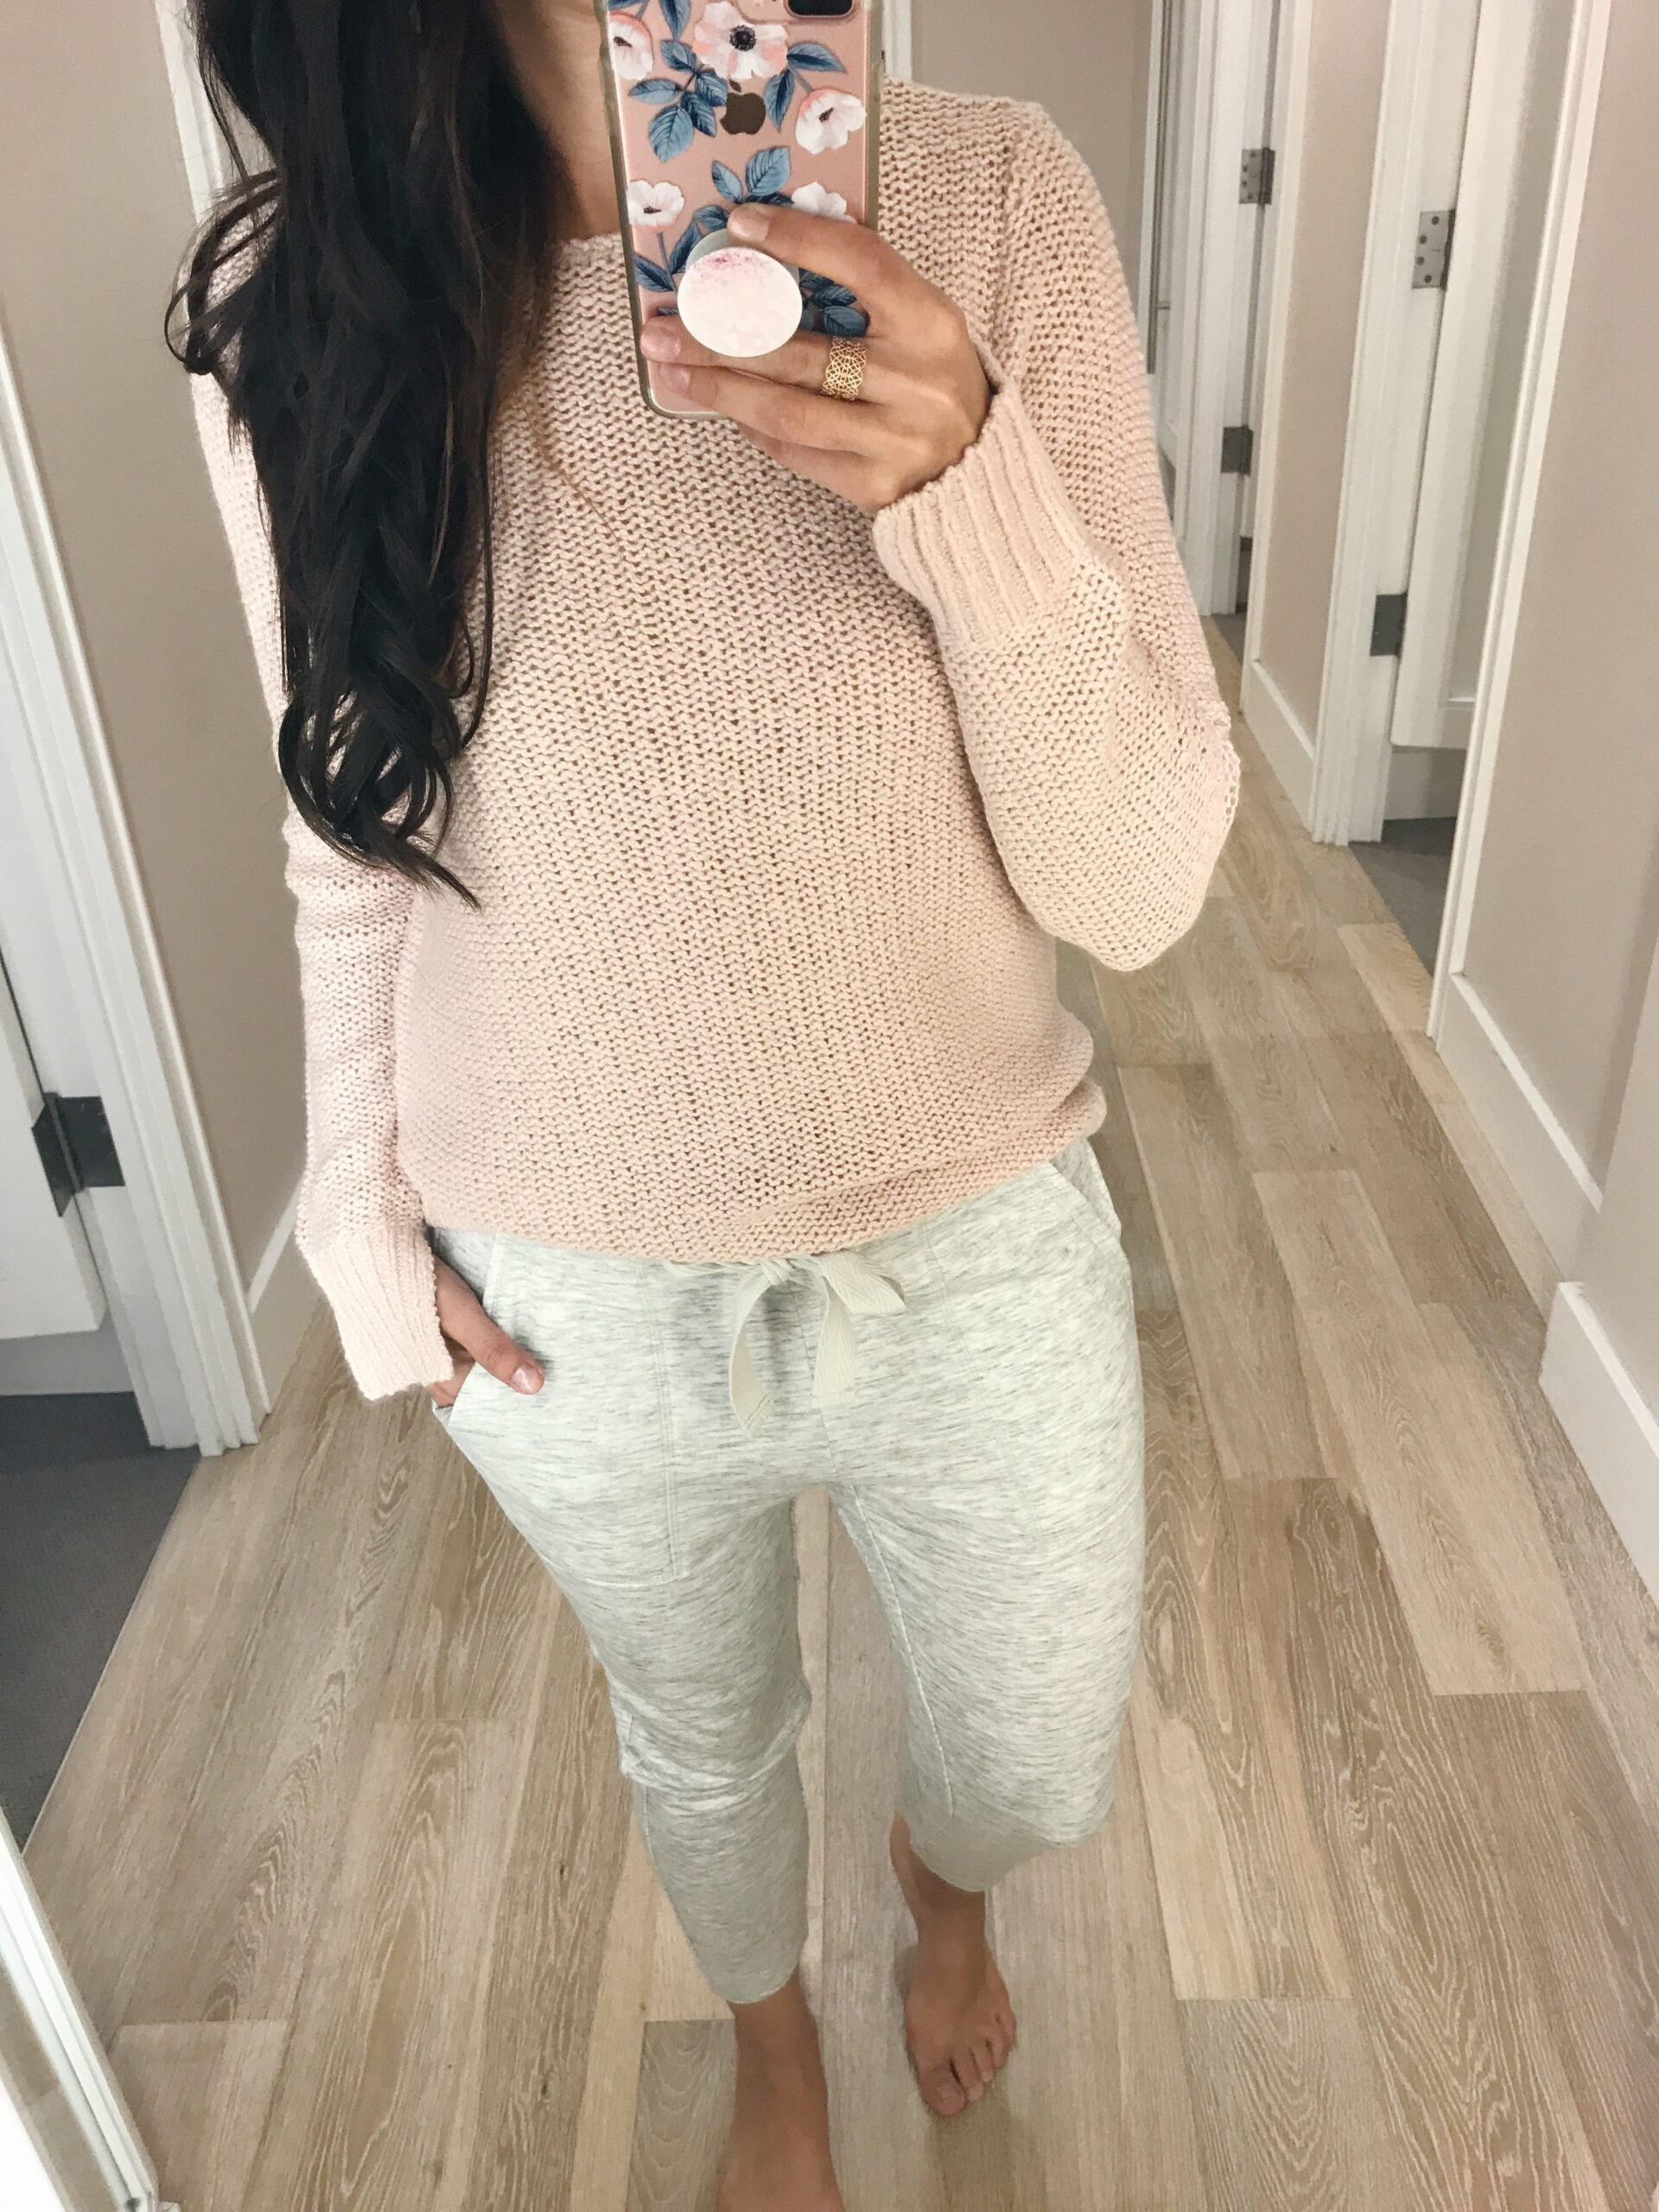 blogger Anna Monteiro blushing rose style blog wearing LOFT joggers from Labor day weekend sales and pink sweater